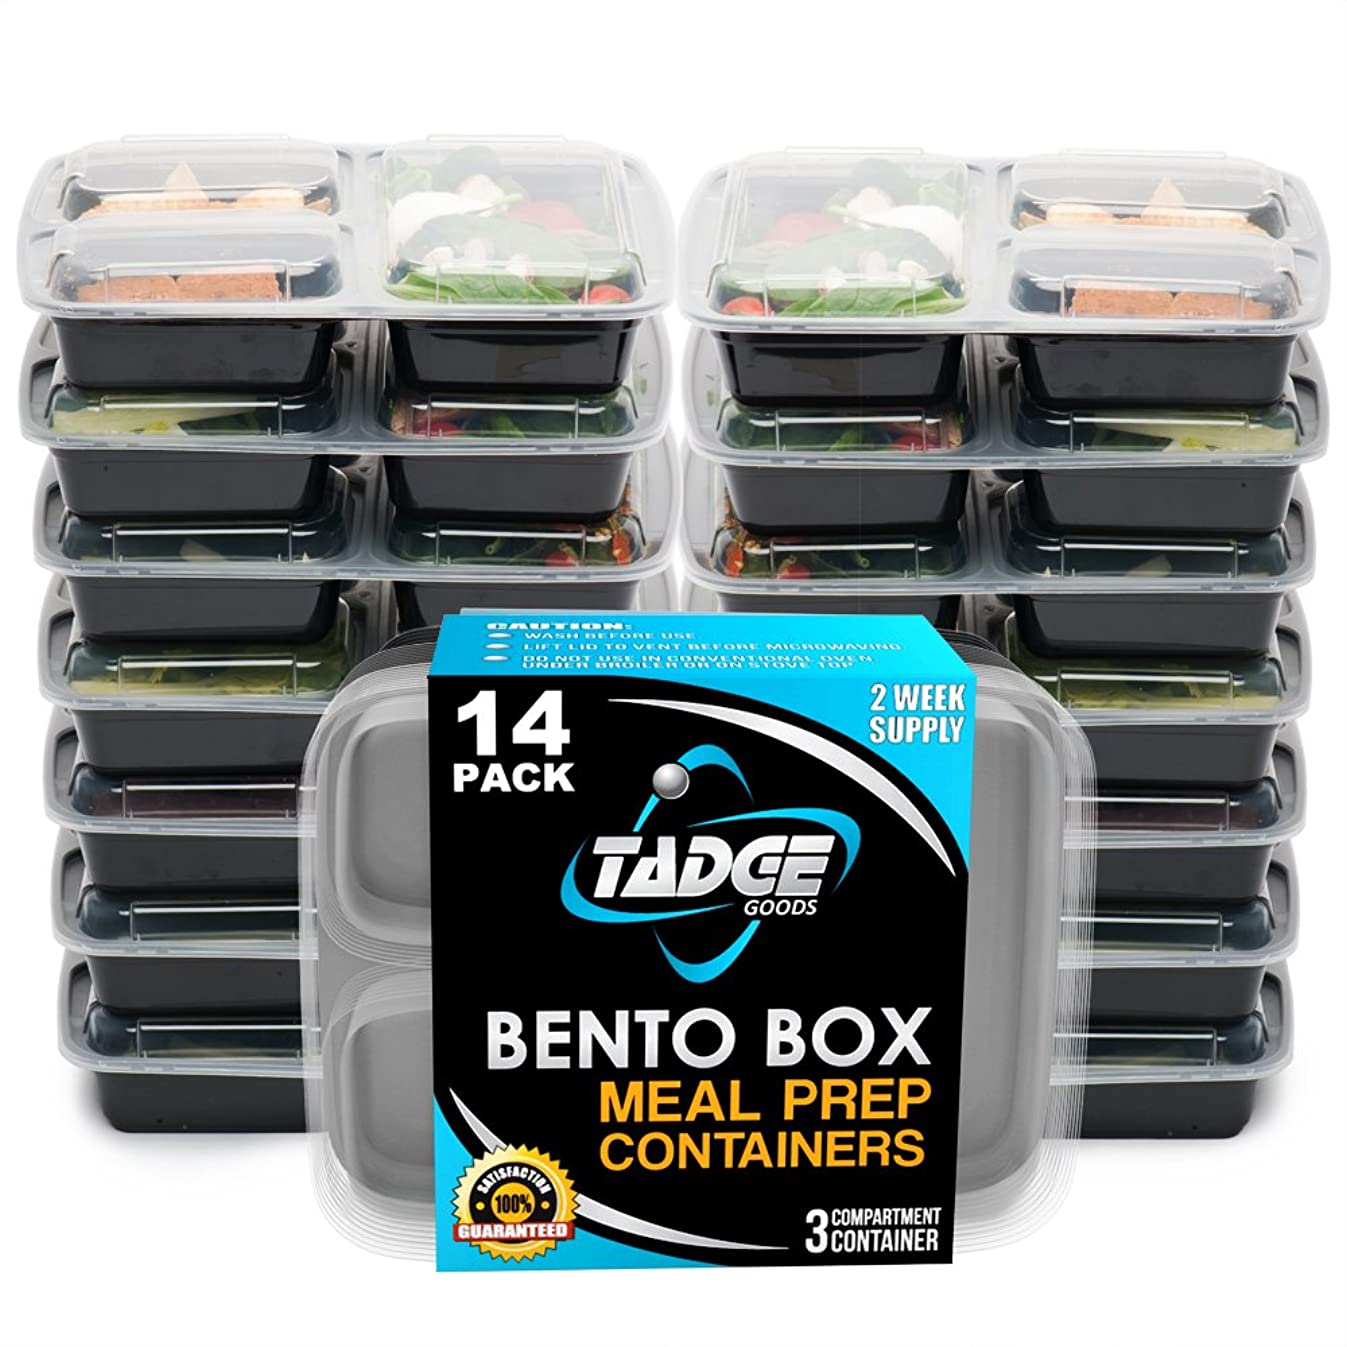 Meal Food Prep Containers Bento Box - 14 Pack Divided Take Out Lunch Box - Food Storage Portion Control - 21 Day Fix BPA Free, Reusable, Microwavable, Dishwasher & Freezer Safe